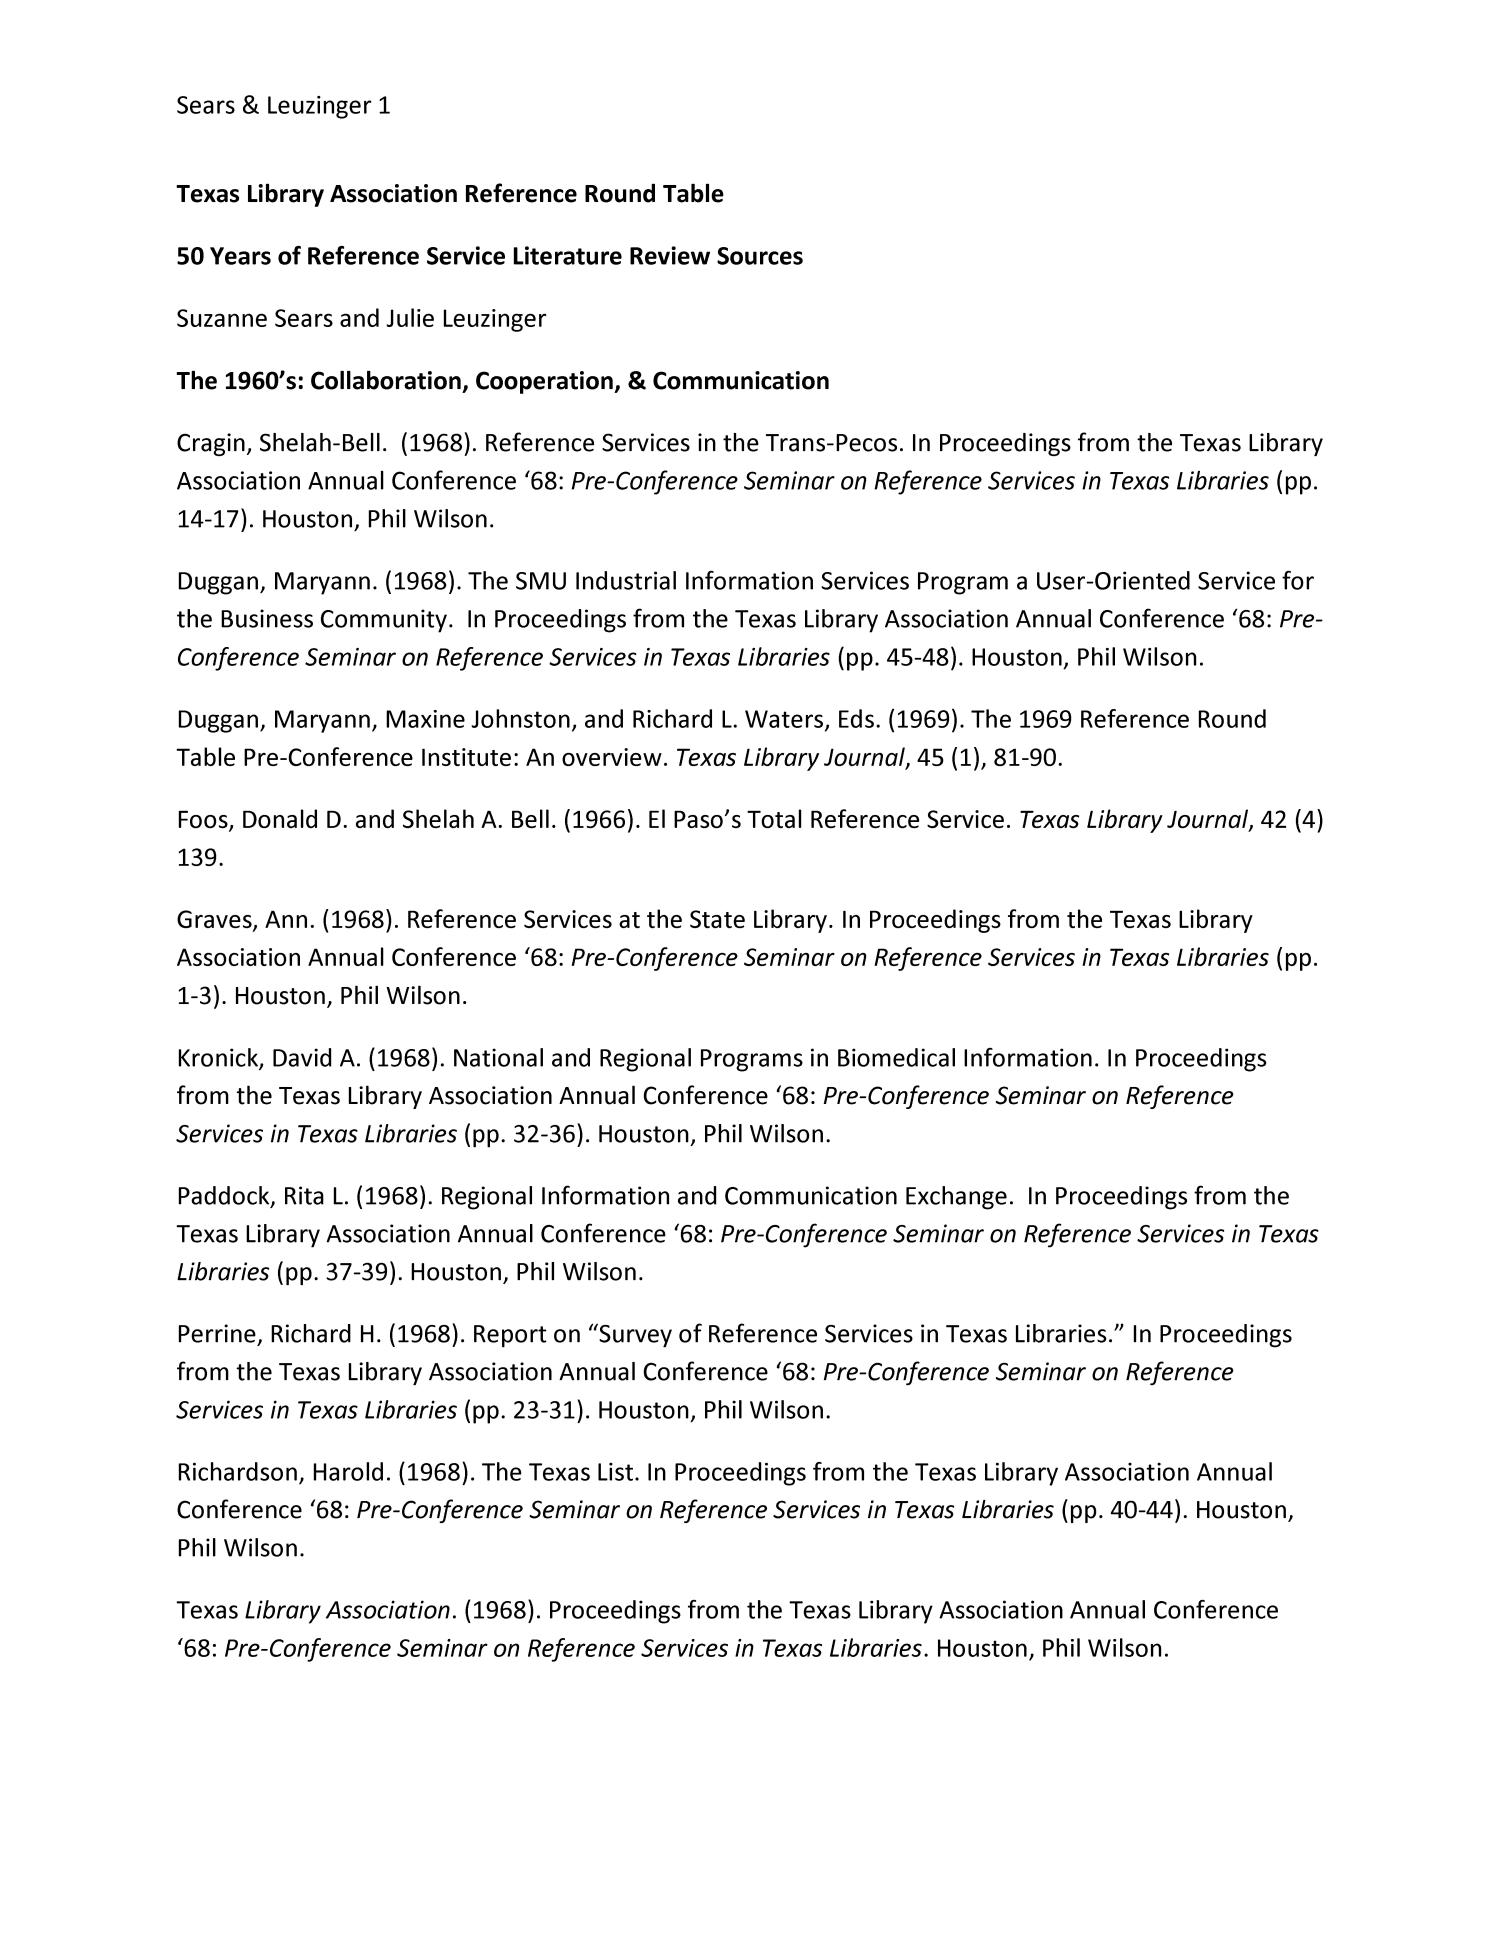 50 Years Of Reference Service Literature Review Sources